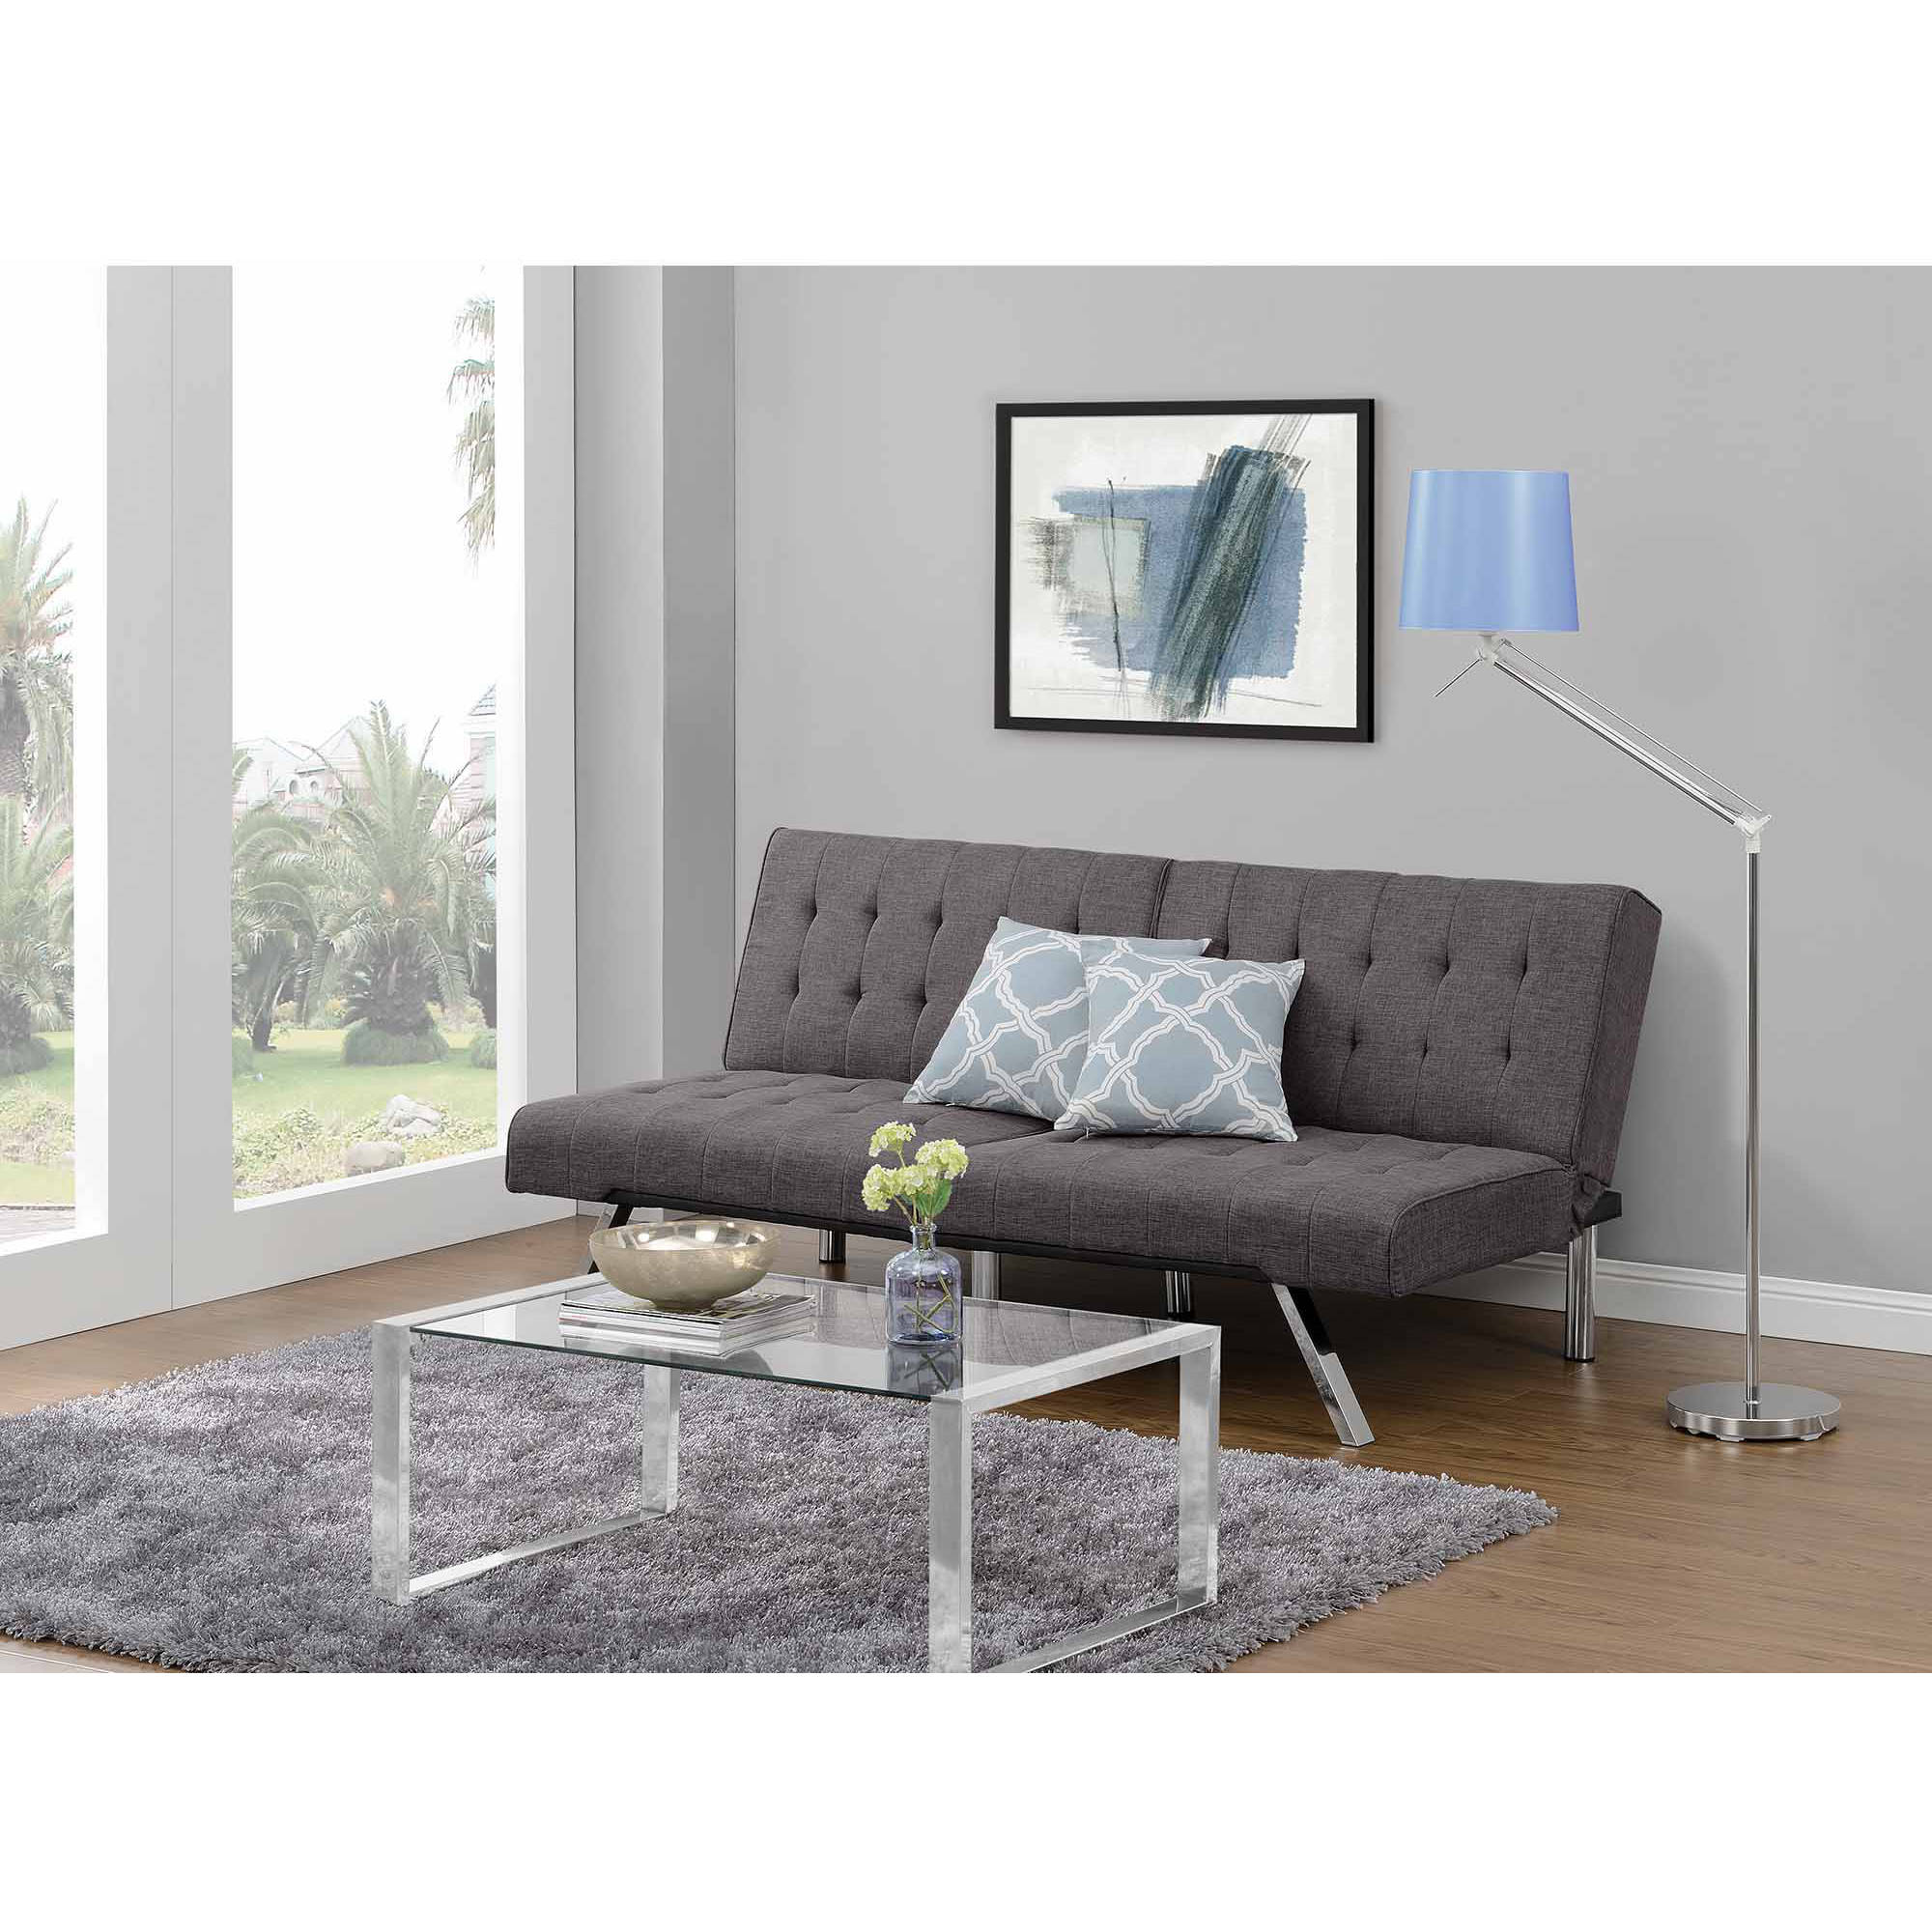 dhp emily convertible futon multiple colors image 1 of 13 dhp emily convertible futon multiple colors   walmart    rh   walmart